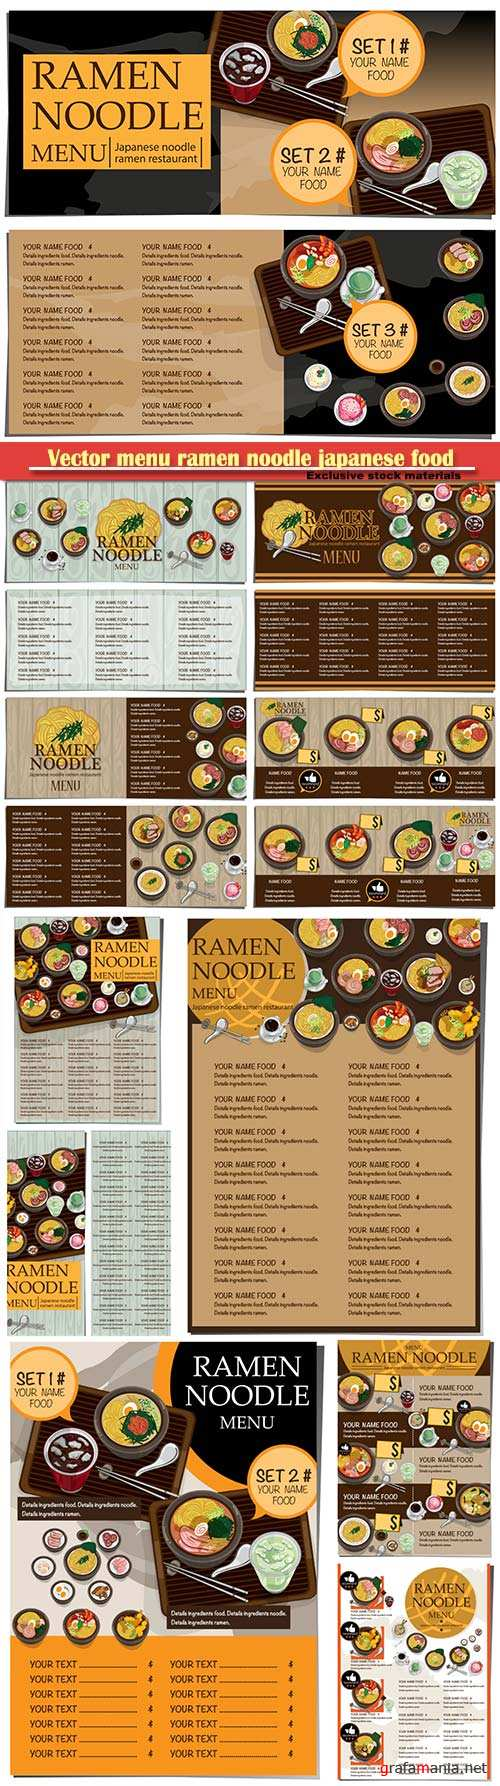 Vector menu ramen noodle japanese food template design